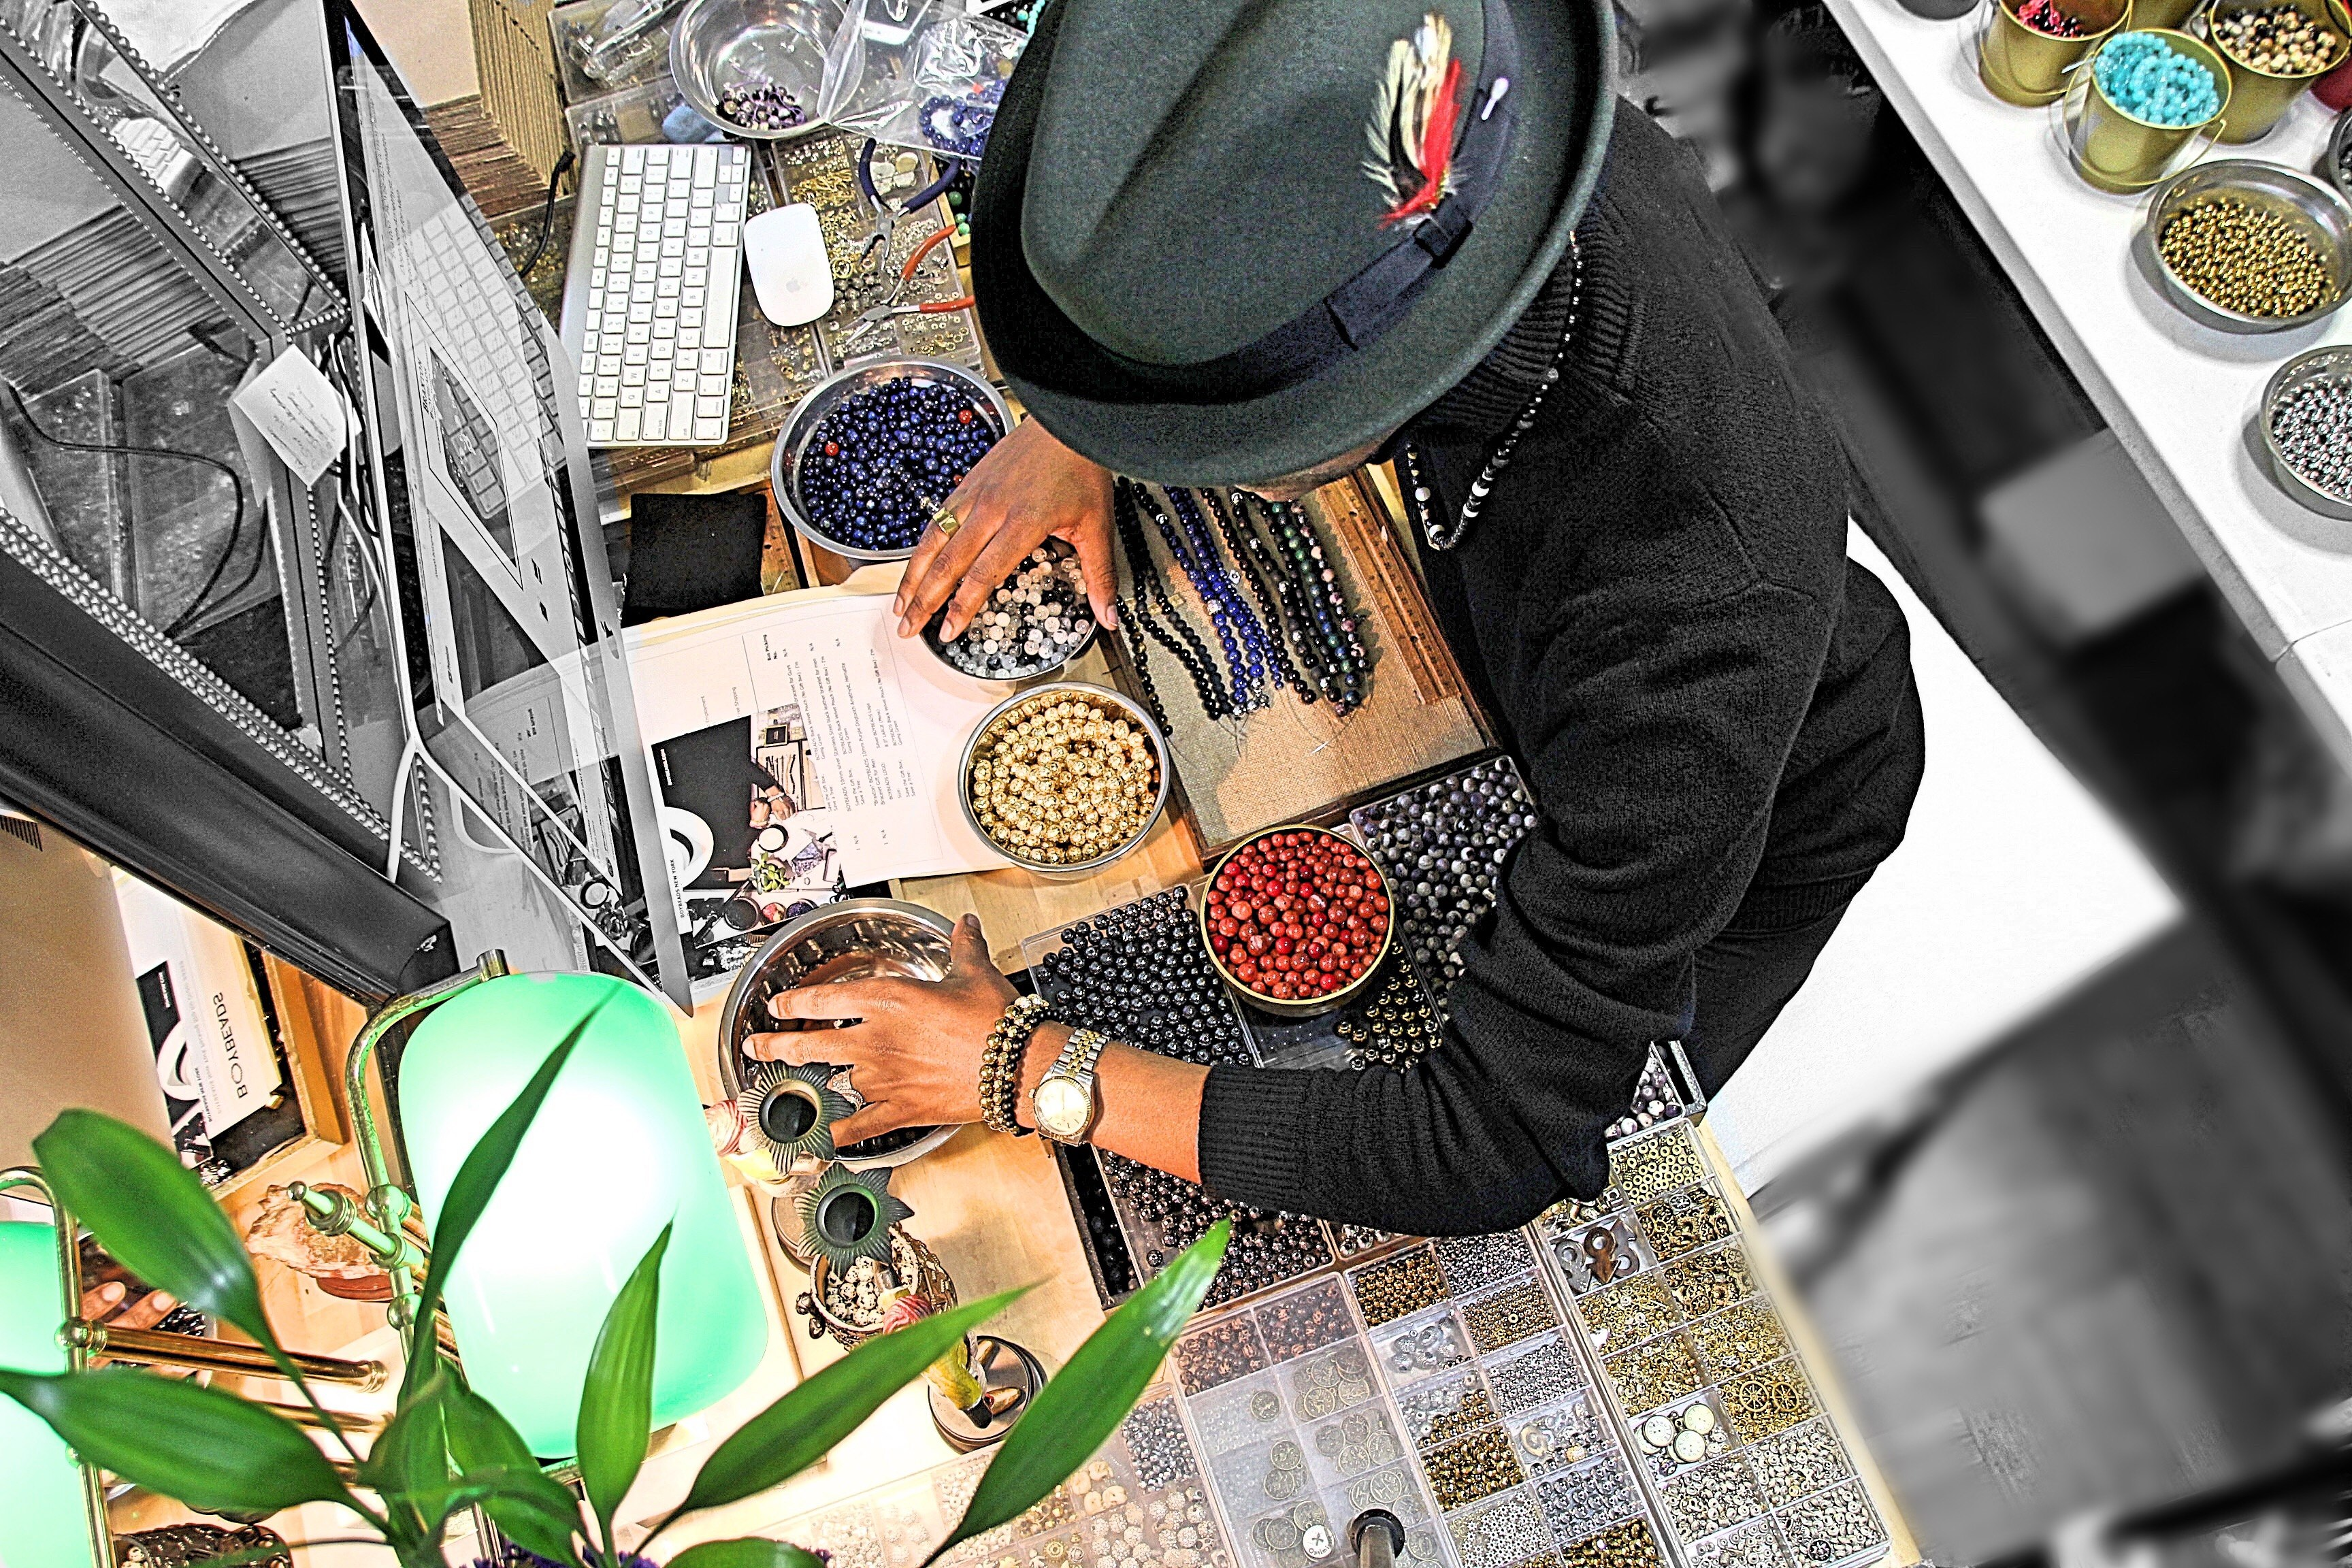 sebastian-mitchell-tarver-boybeads-new-york-small-business-studio-how-to-make-bead-bracelets-for-men-home-office-studio-workbench-fedora-hat-flamekeepers-hat-club-harlem-ny-2018.jpg